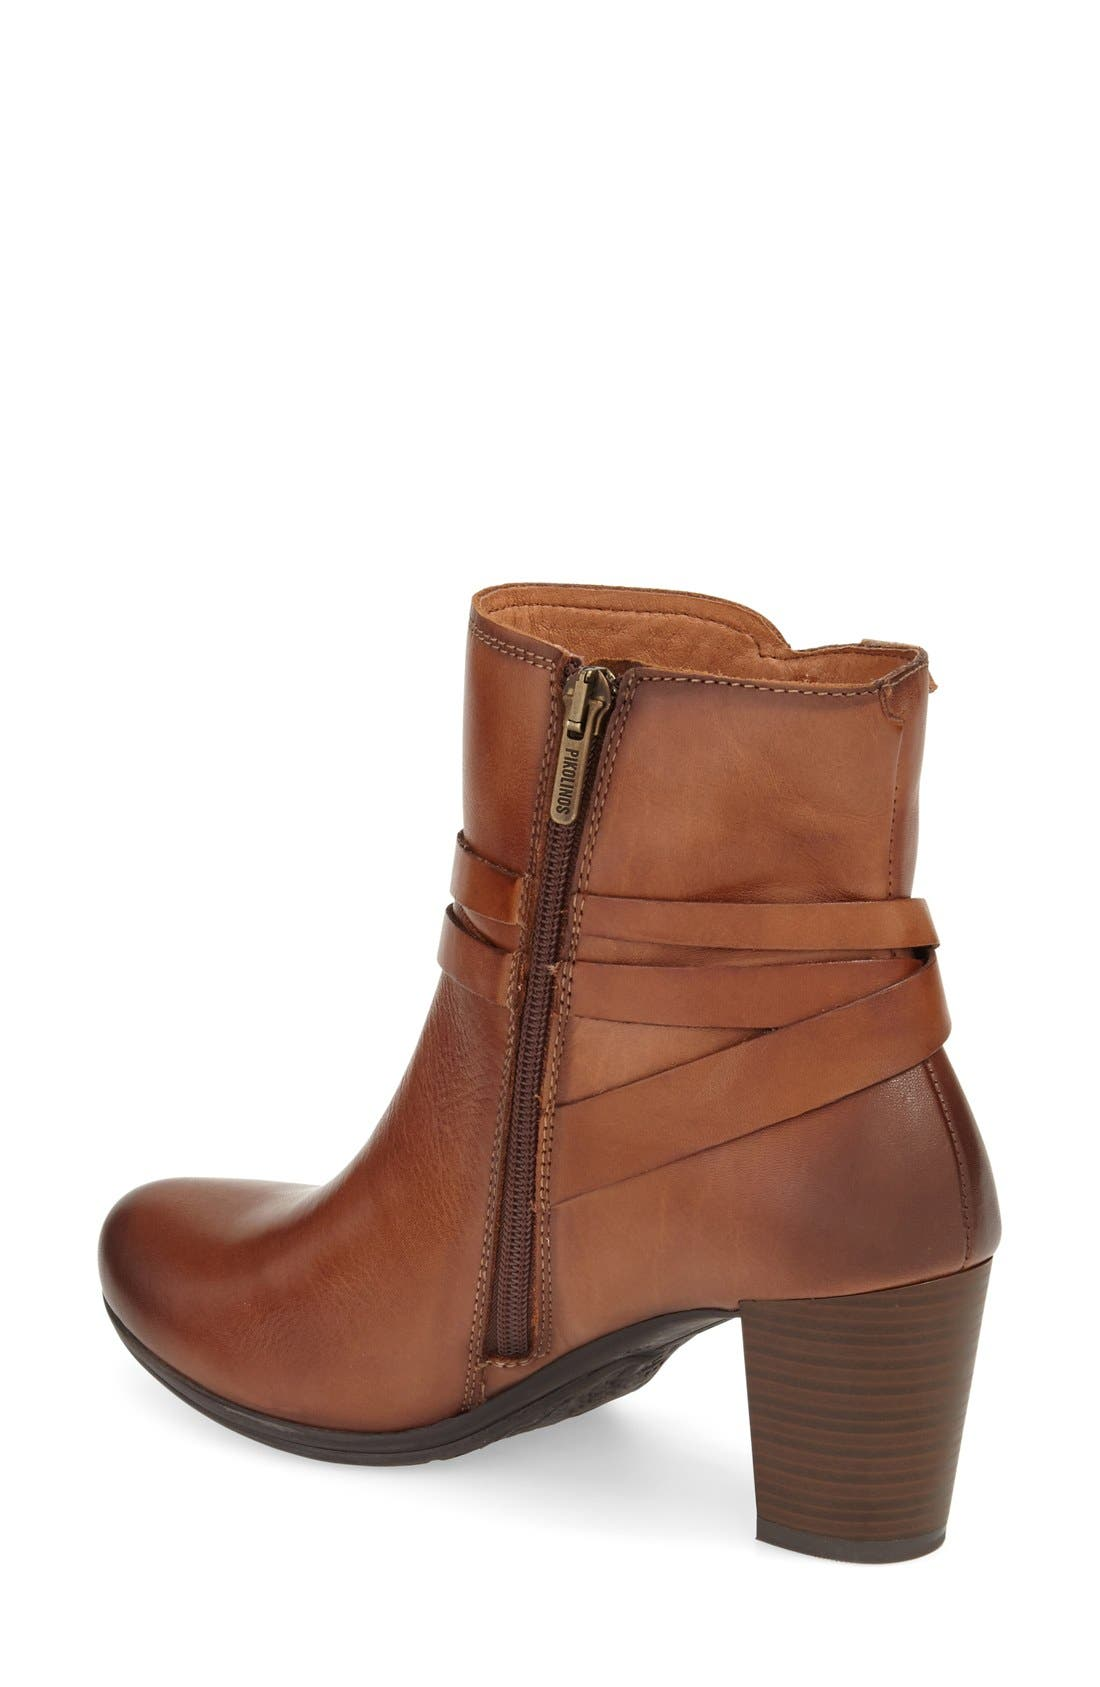 'Verona' Bootie,                             Alternate thumbnail 2, color,                             Cuero Leather